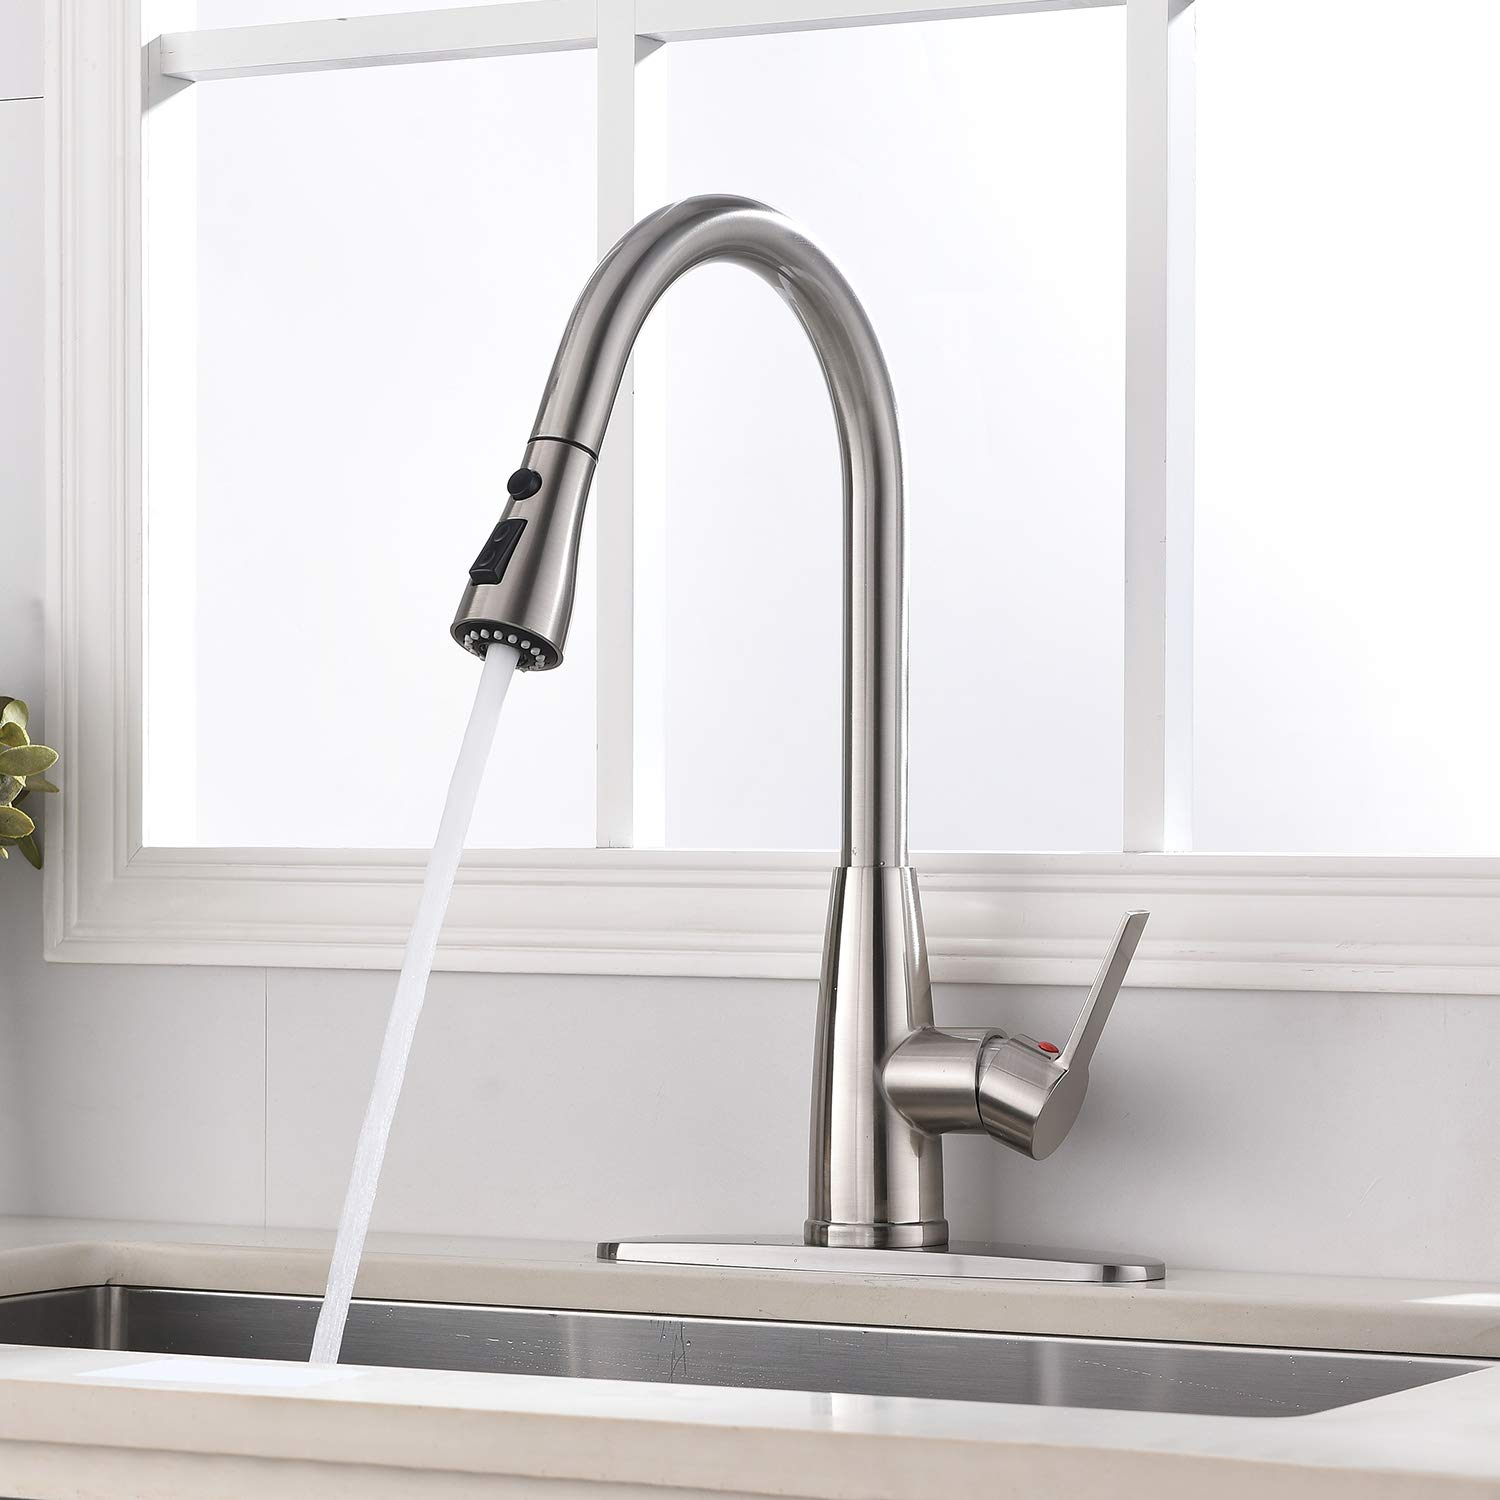 Hotis Modern High Arc 1 or 3 Hole Single Handle Stainless Steel Prep Sprayer Pull Out Pull Down Sprayer Kitchen Sink Faucet, Brushed Nickel with Deck Plate by HOTIS HOME (Image #5)